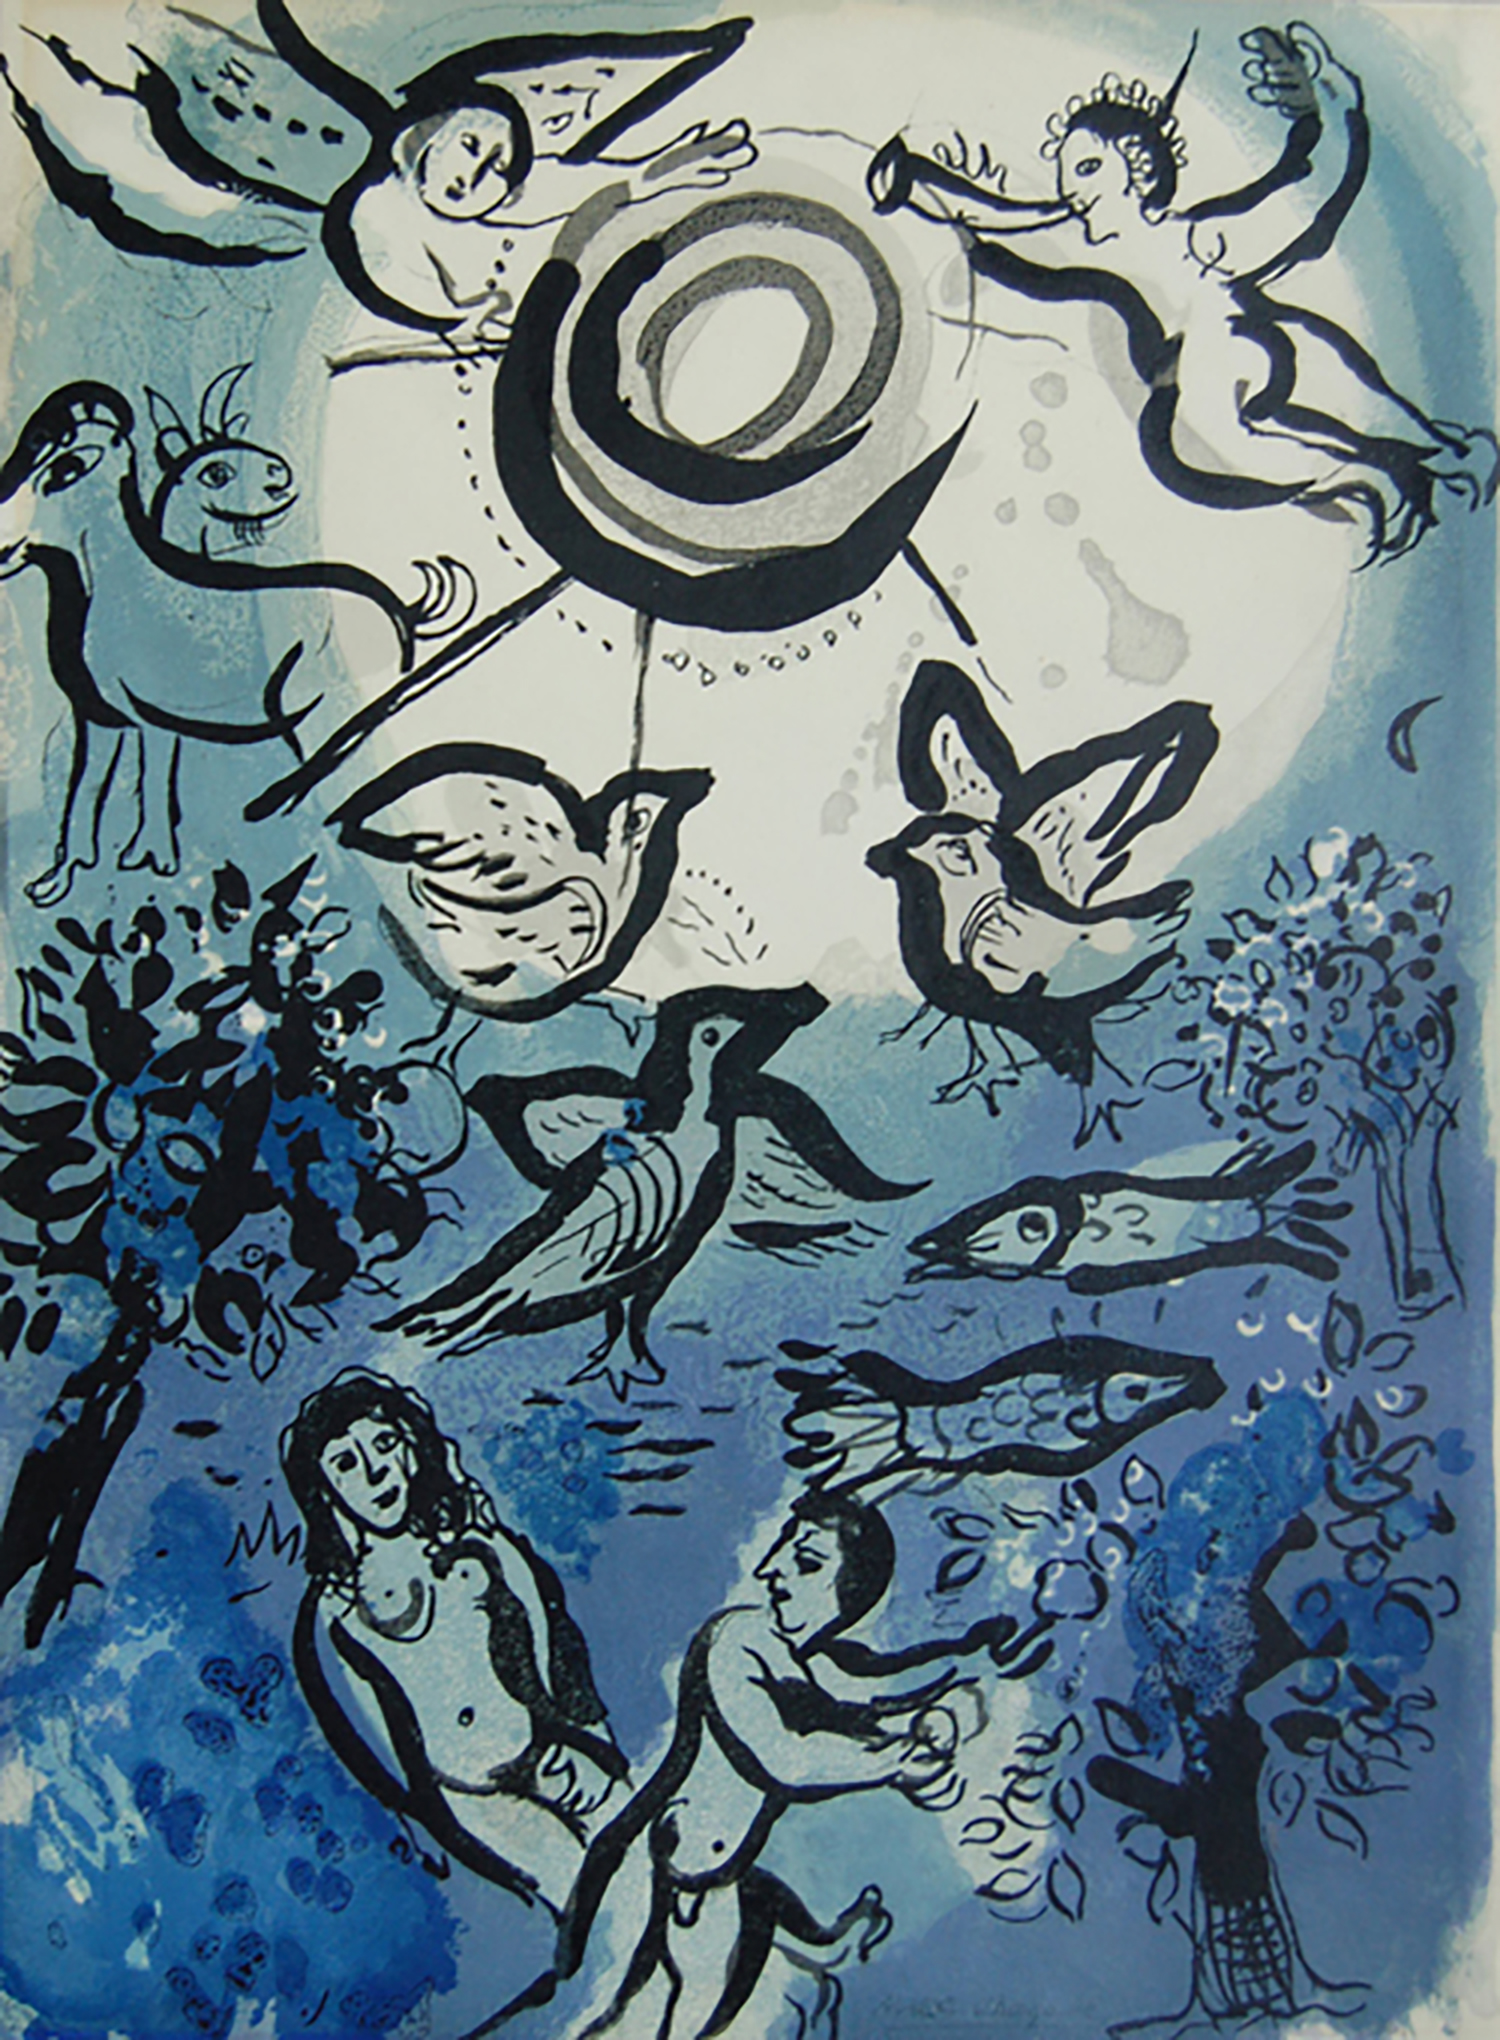 Figure 2:  Creation . Chagall opens his 1960 Bible Suite with a stunning and imaginative depiction of creation. The ethereal blues and the floating images of birds, animals, and angels swirl around a central sun/moon image. Set at an angle to each other, Eve seems to emerge from Adam's side, recalling the biblical story of the creation of Eve from the rib of Adam. All elements combine to portray a celebratory view of God's creation.